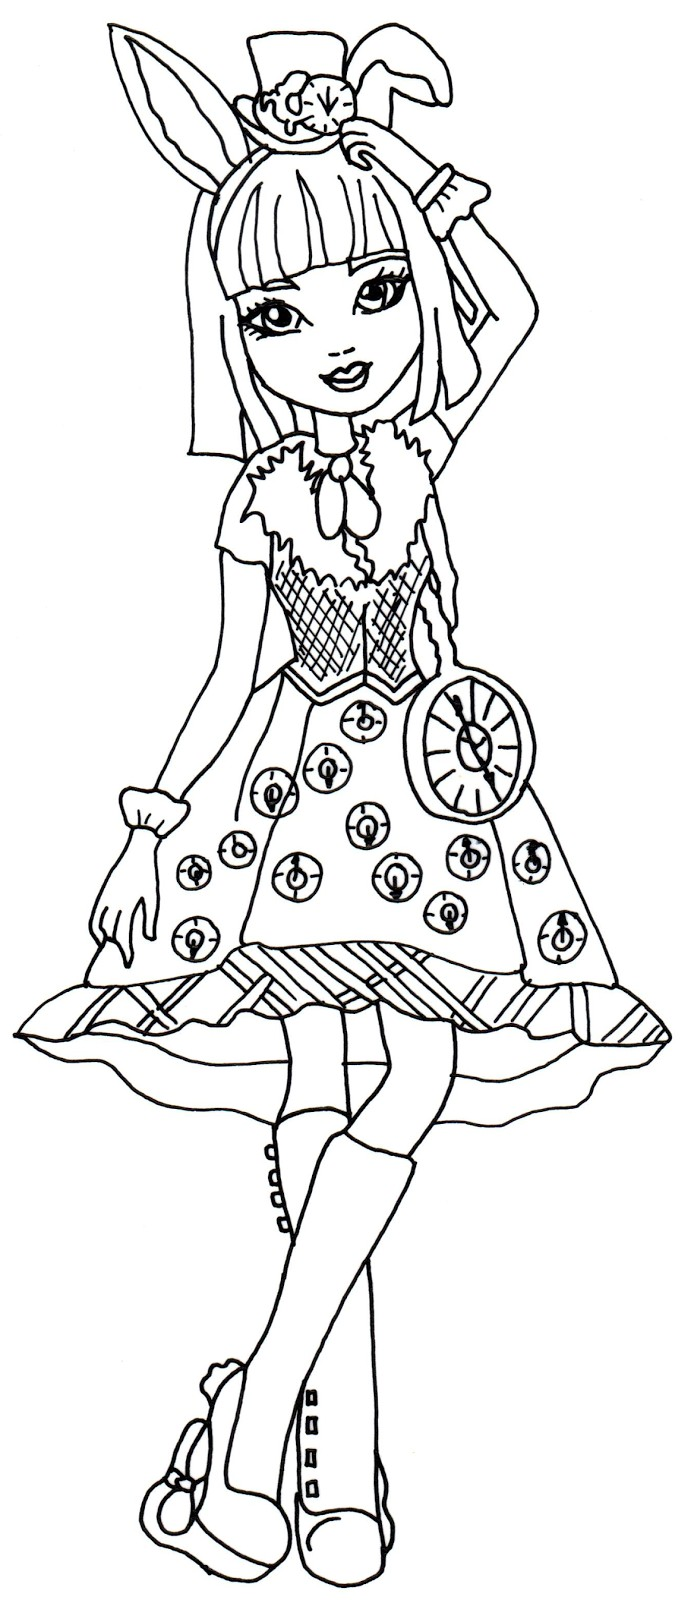 694x1600 Ever After High Way Too Wonderland Coloring Pages Fresh Free